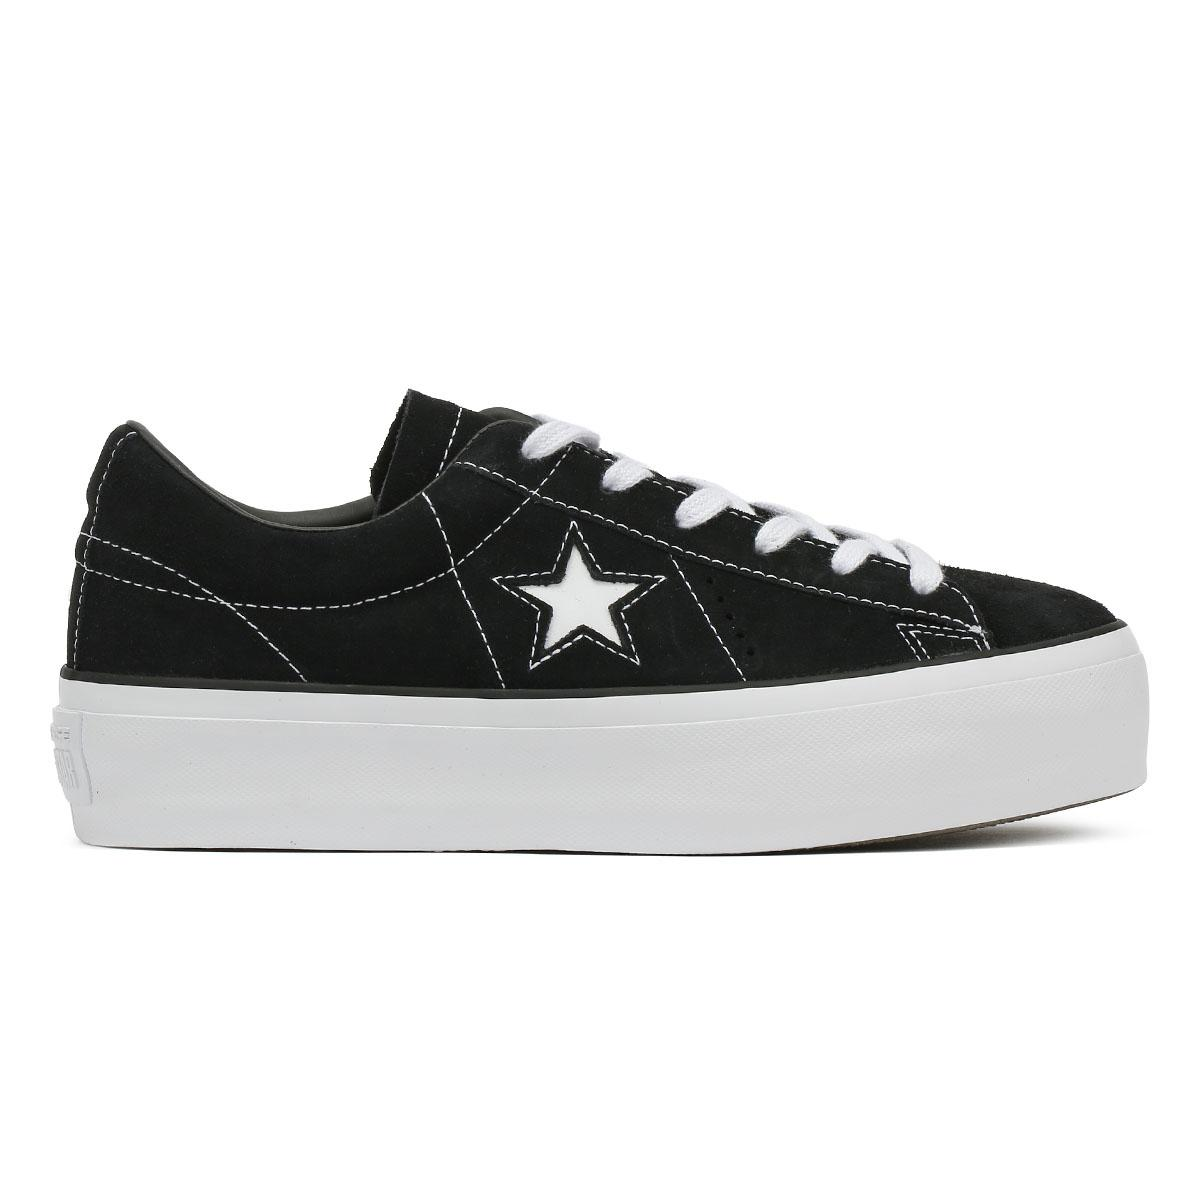 Converse One Star Platform Ox Trainers